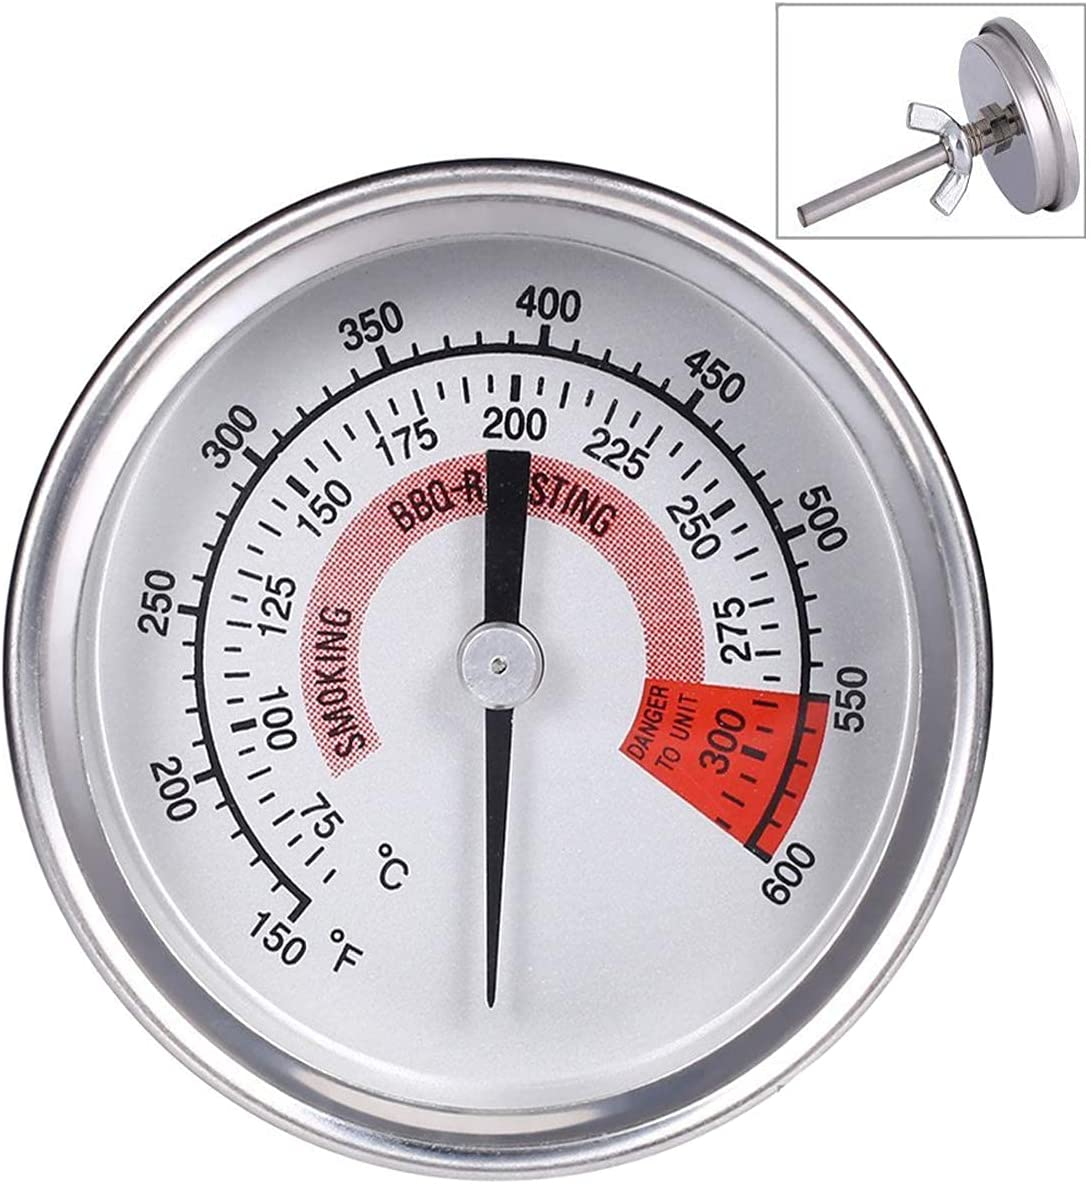 Ecloud ShopUS Grill Thermometers Barbecue Charcoal Grill Smoker Temperature Gauge Pit BBQ Thermometer Kitchen 300°C Stainless Steel